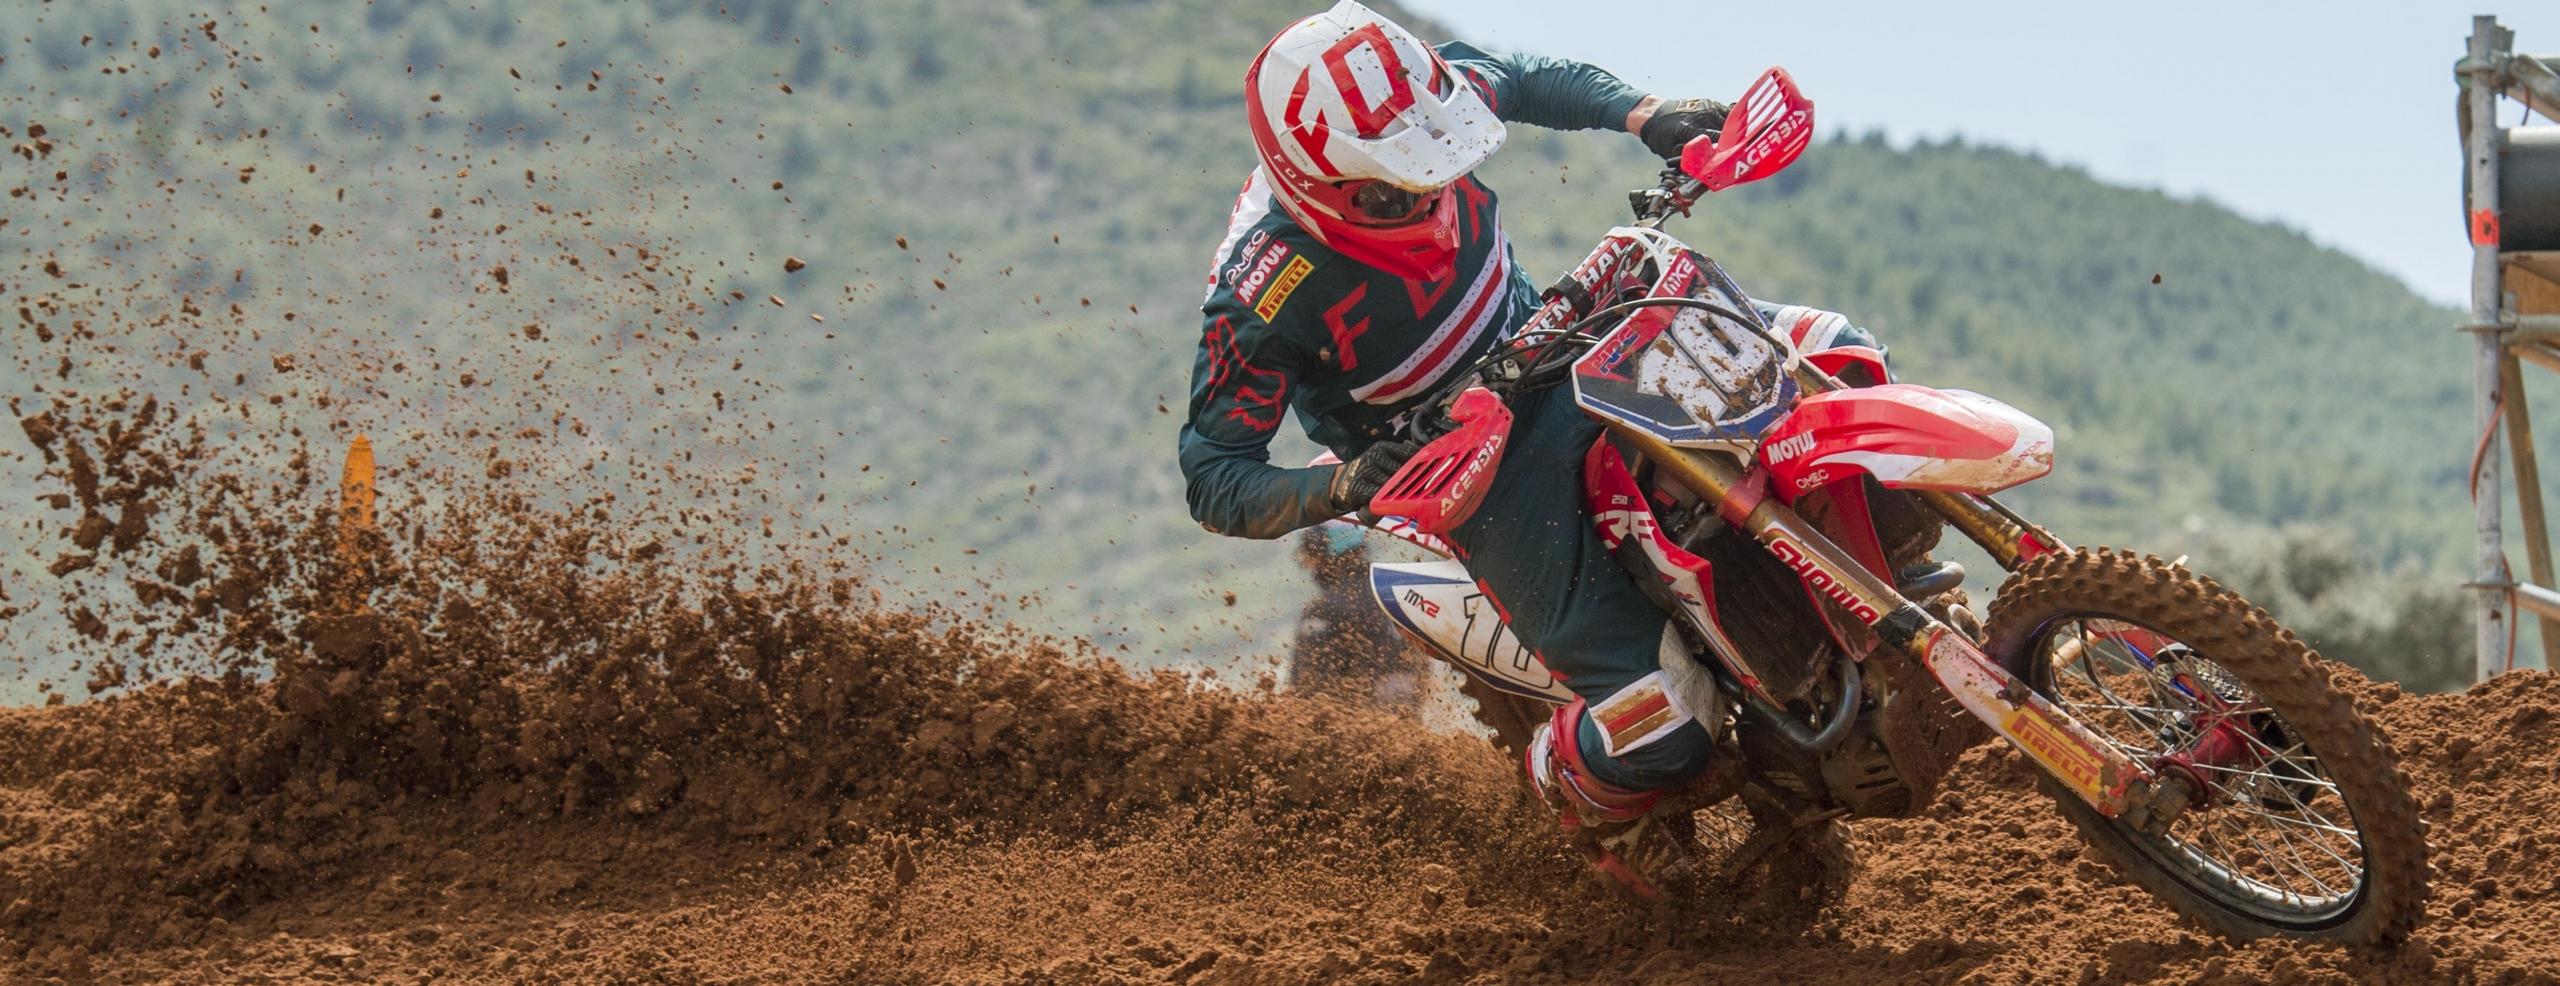 Vlaanderen makes up for early tumble in RedSand's MX2 qualifying race